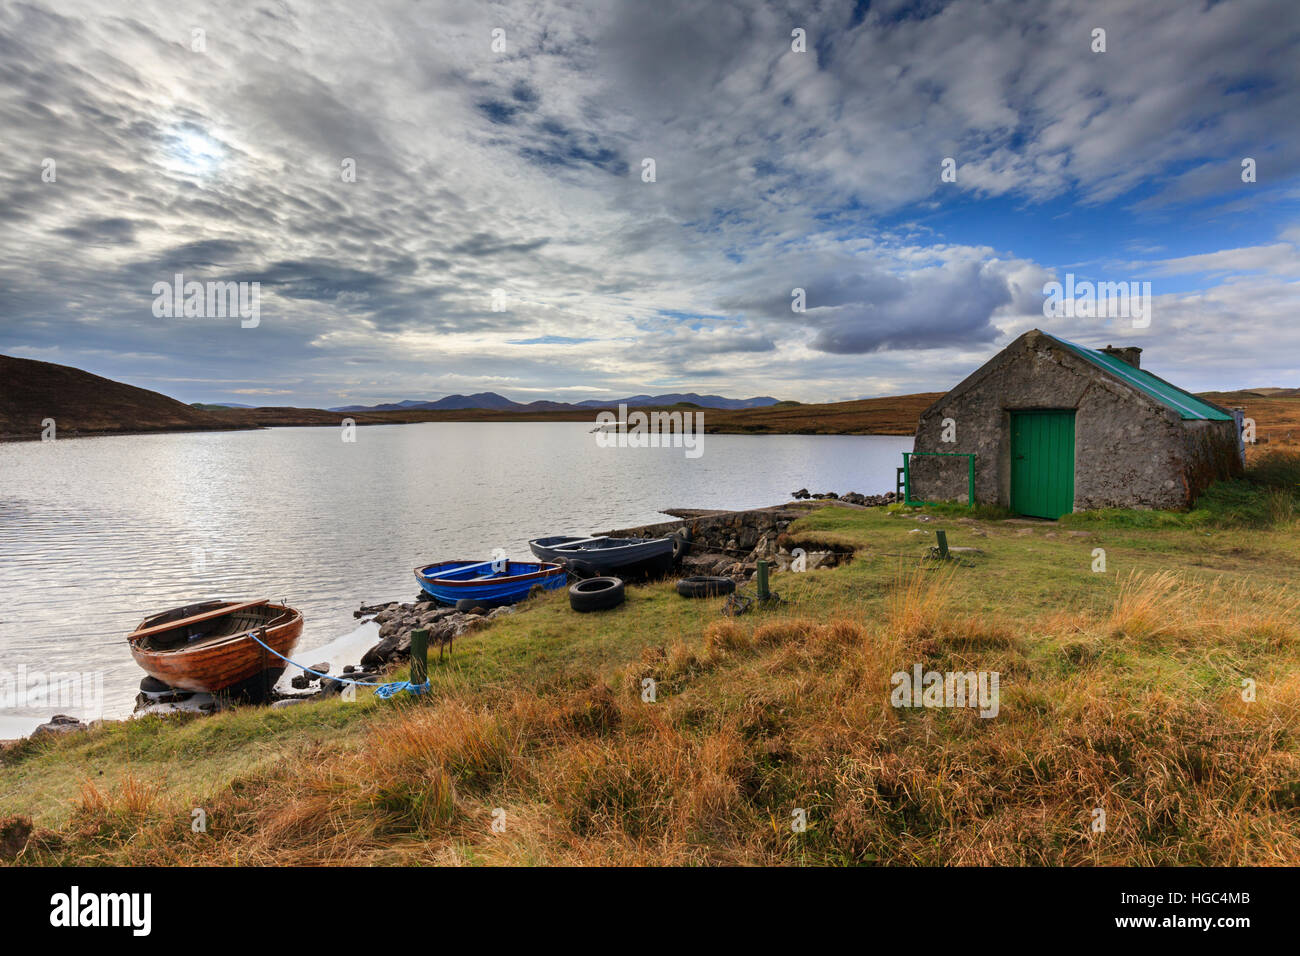 Loch Bhaltois on the Isle of Harris in the Outer Hebrides. - Stock Image